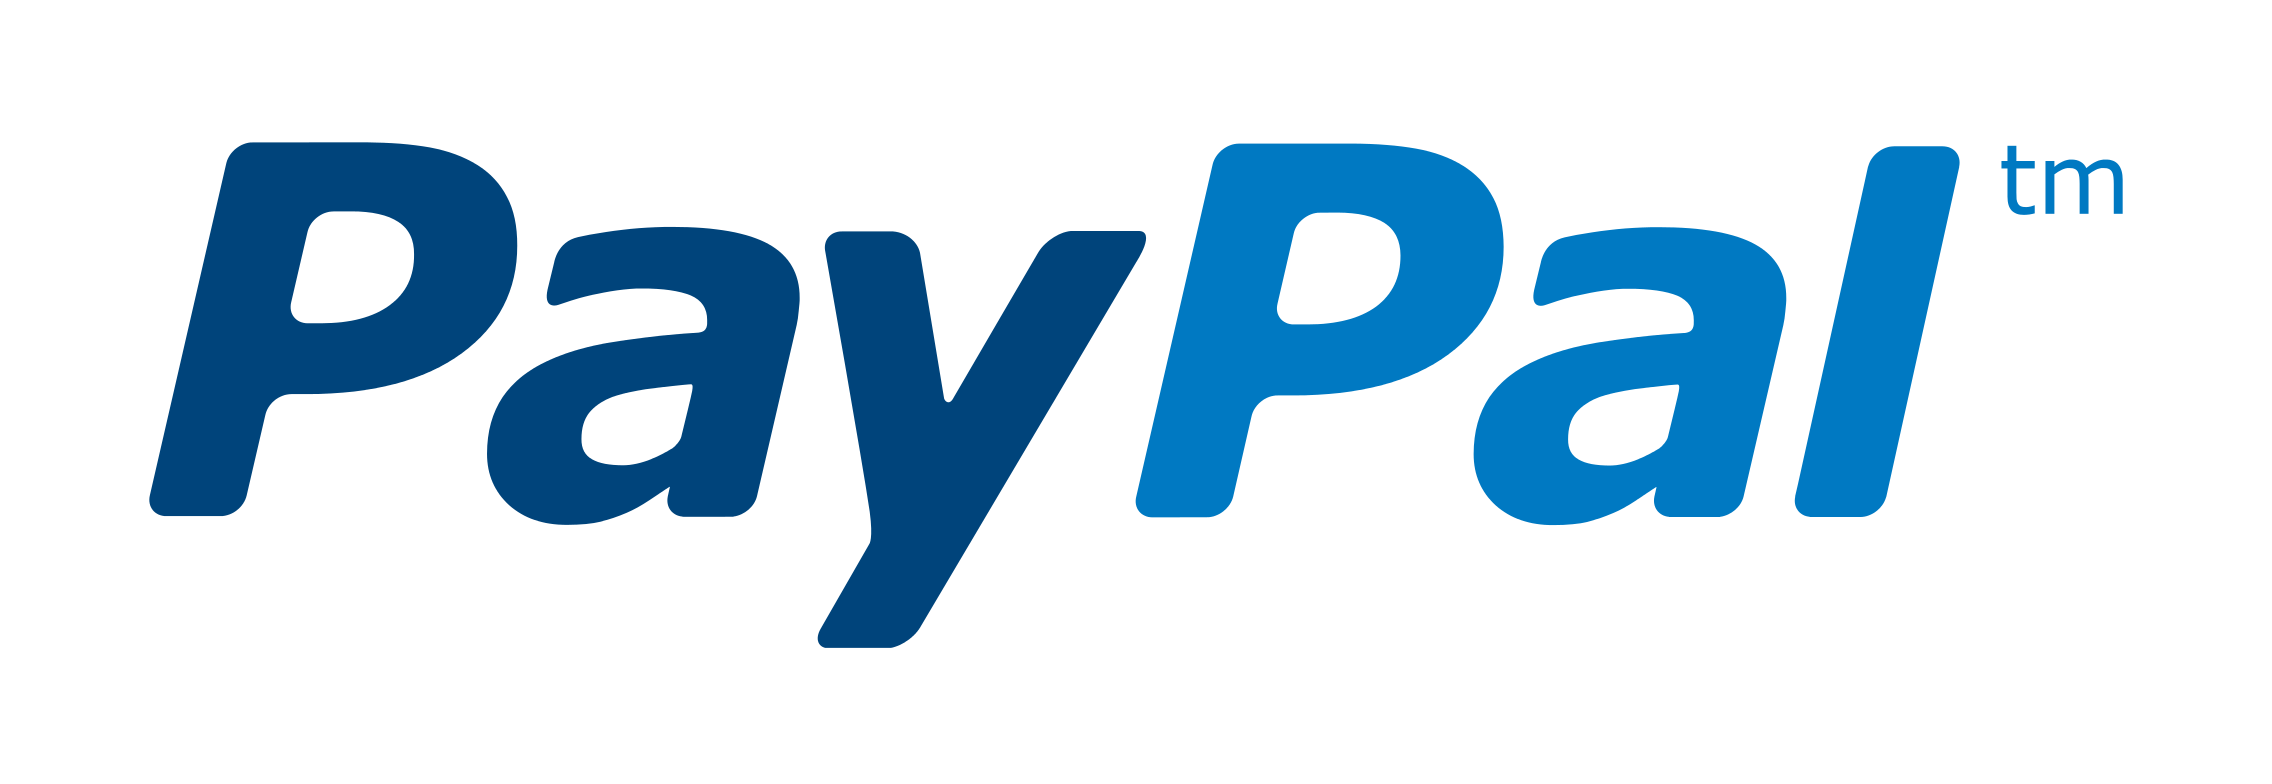 Pay Pale